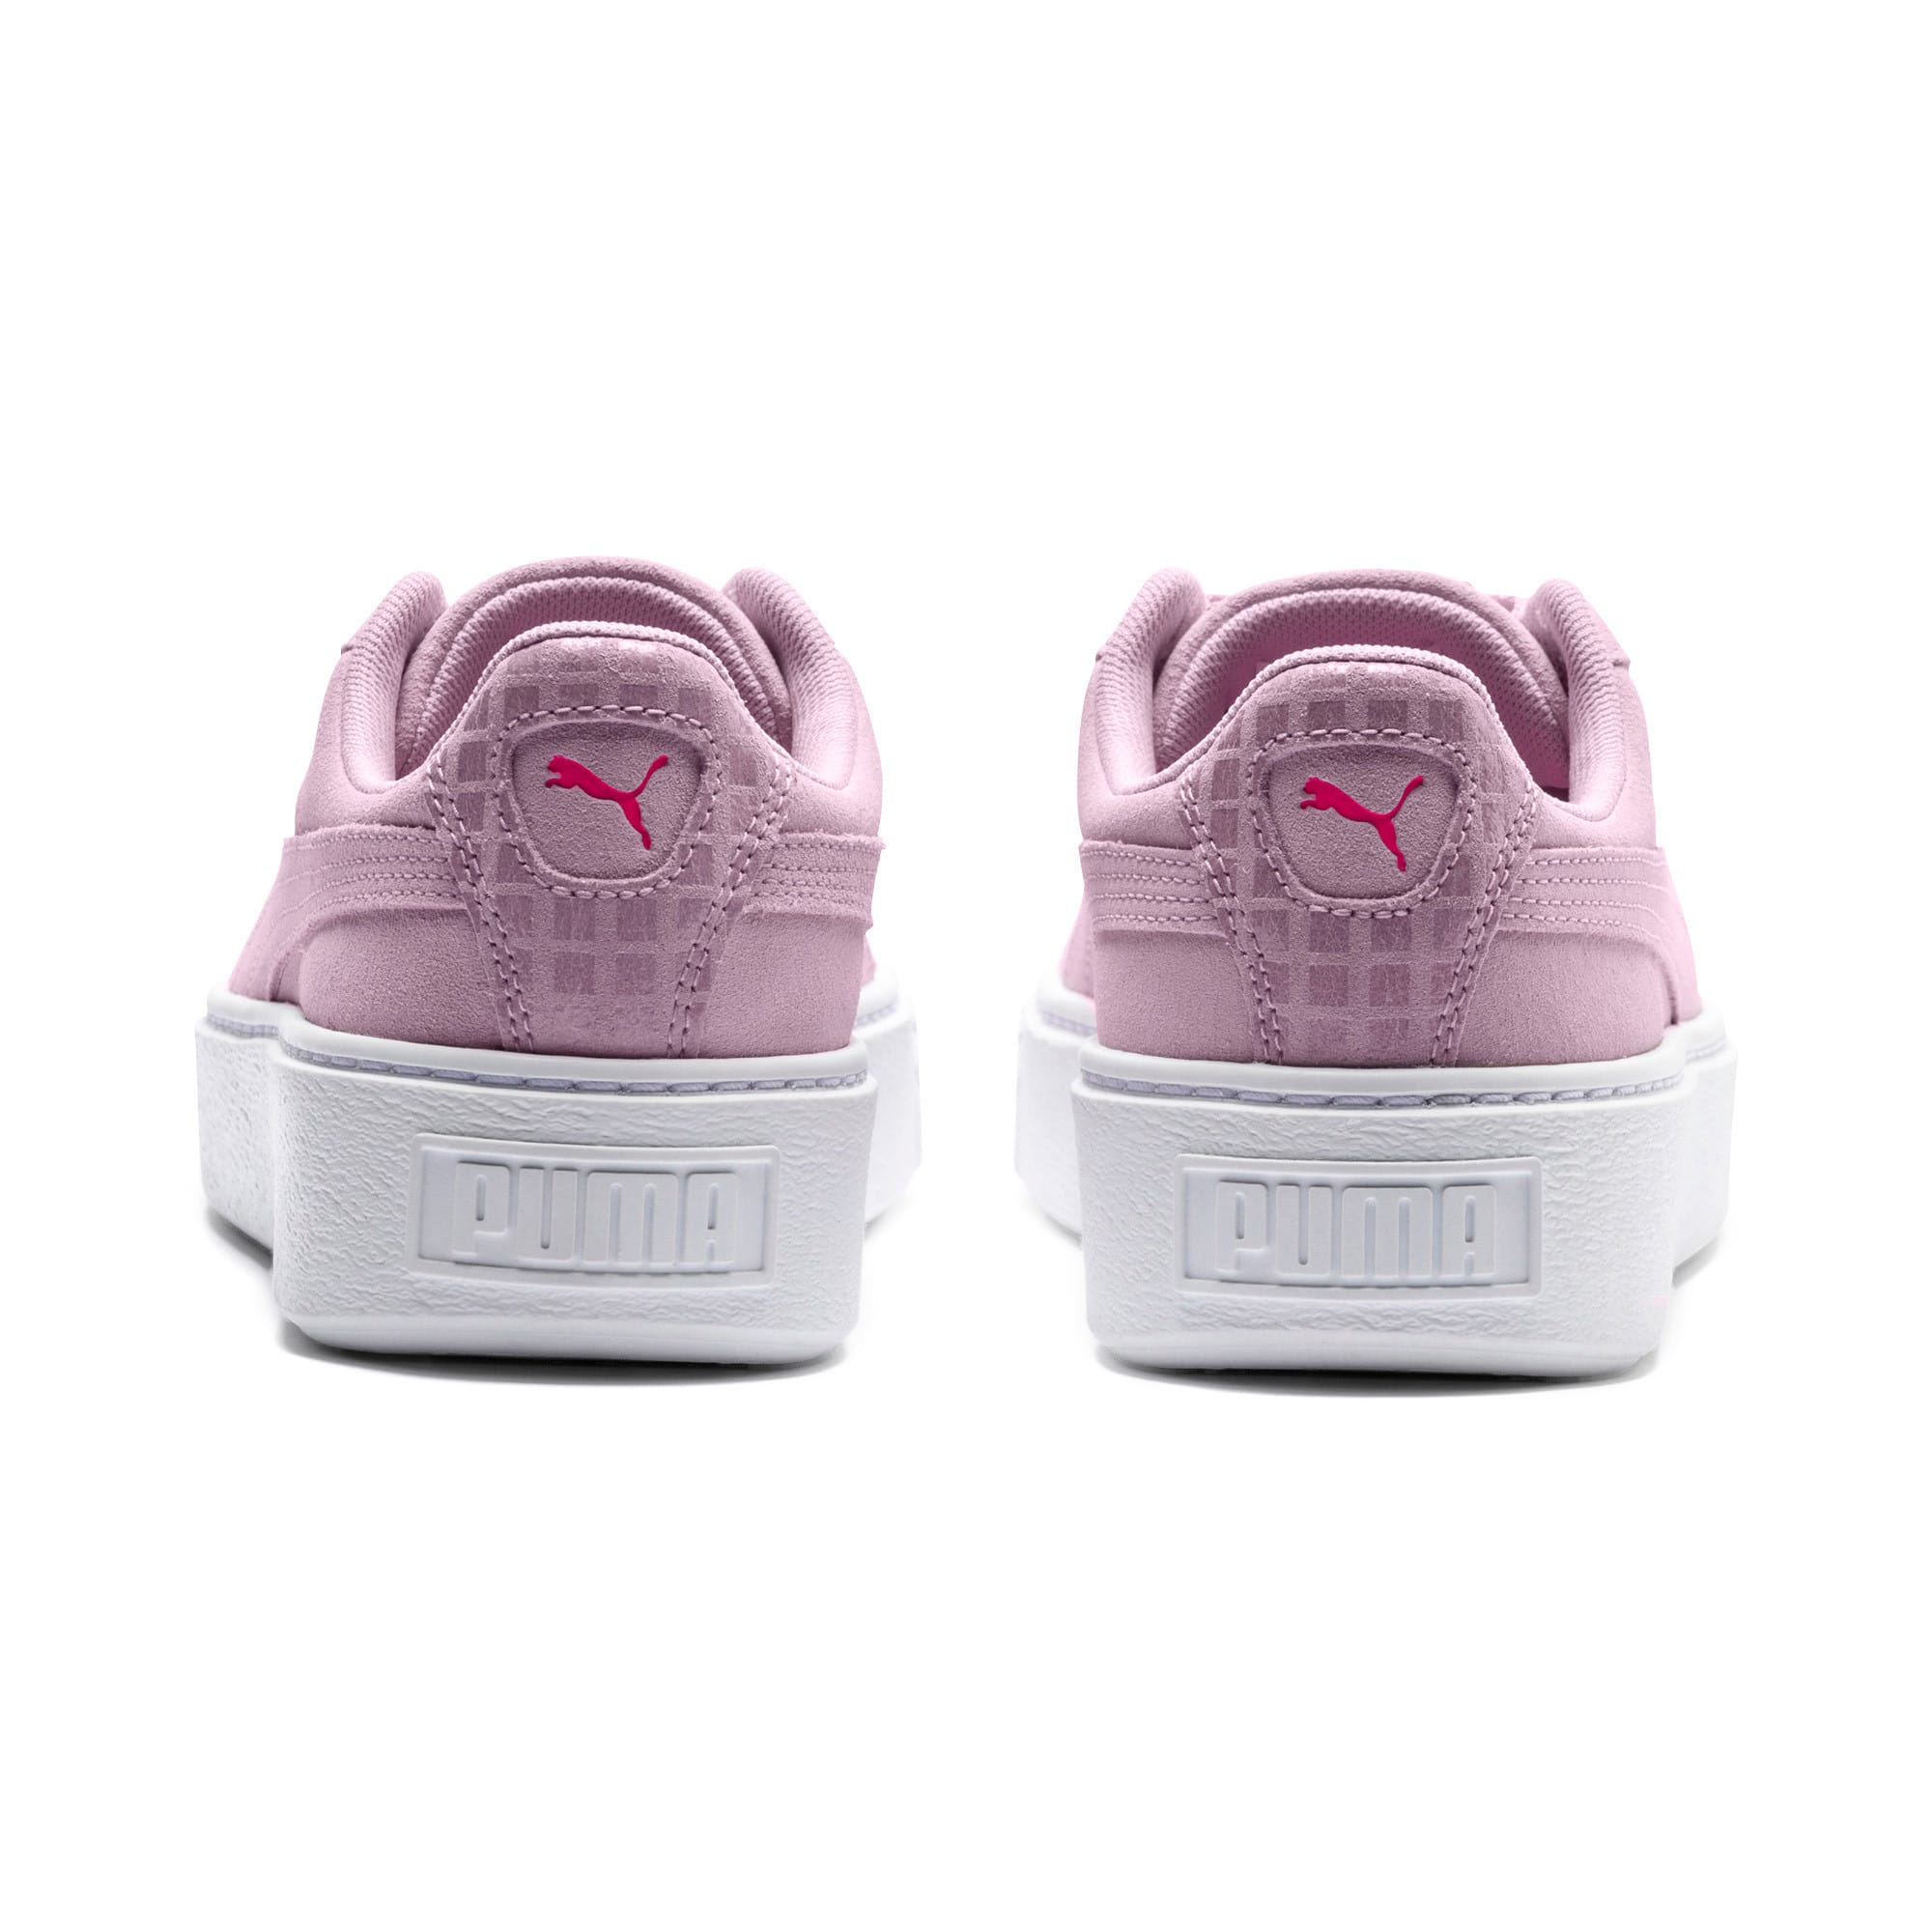 Thumbnail 3 of Suede Platform Street 2 Women's Trainers, Winsome Orchid, medium-IND